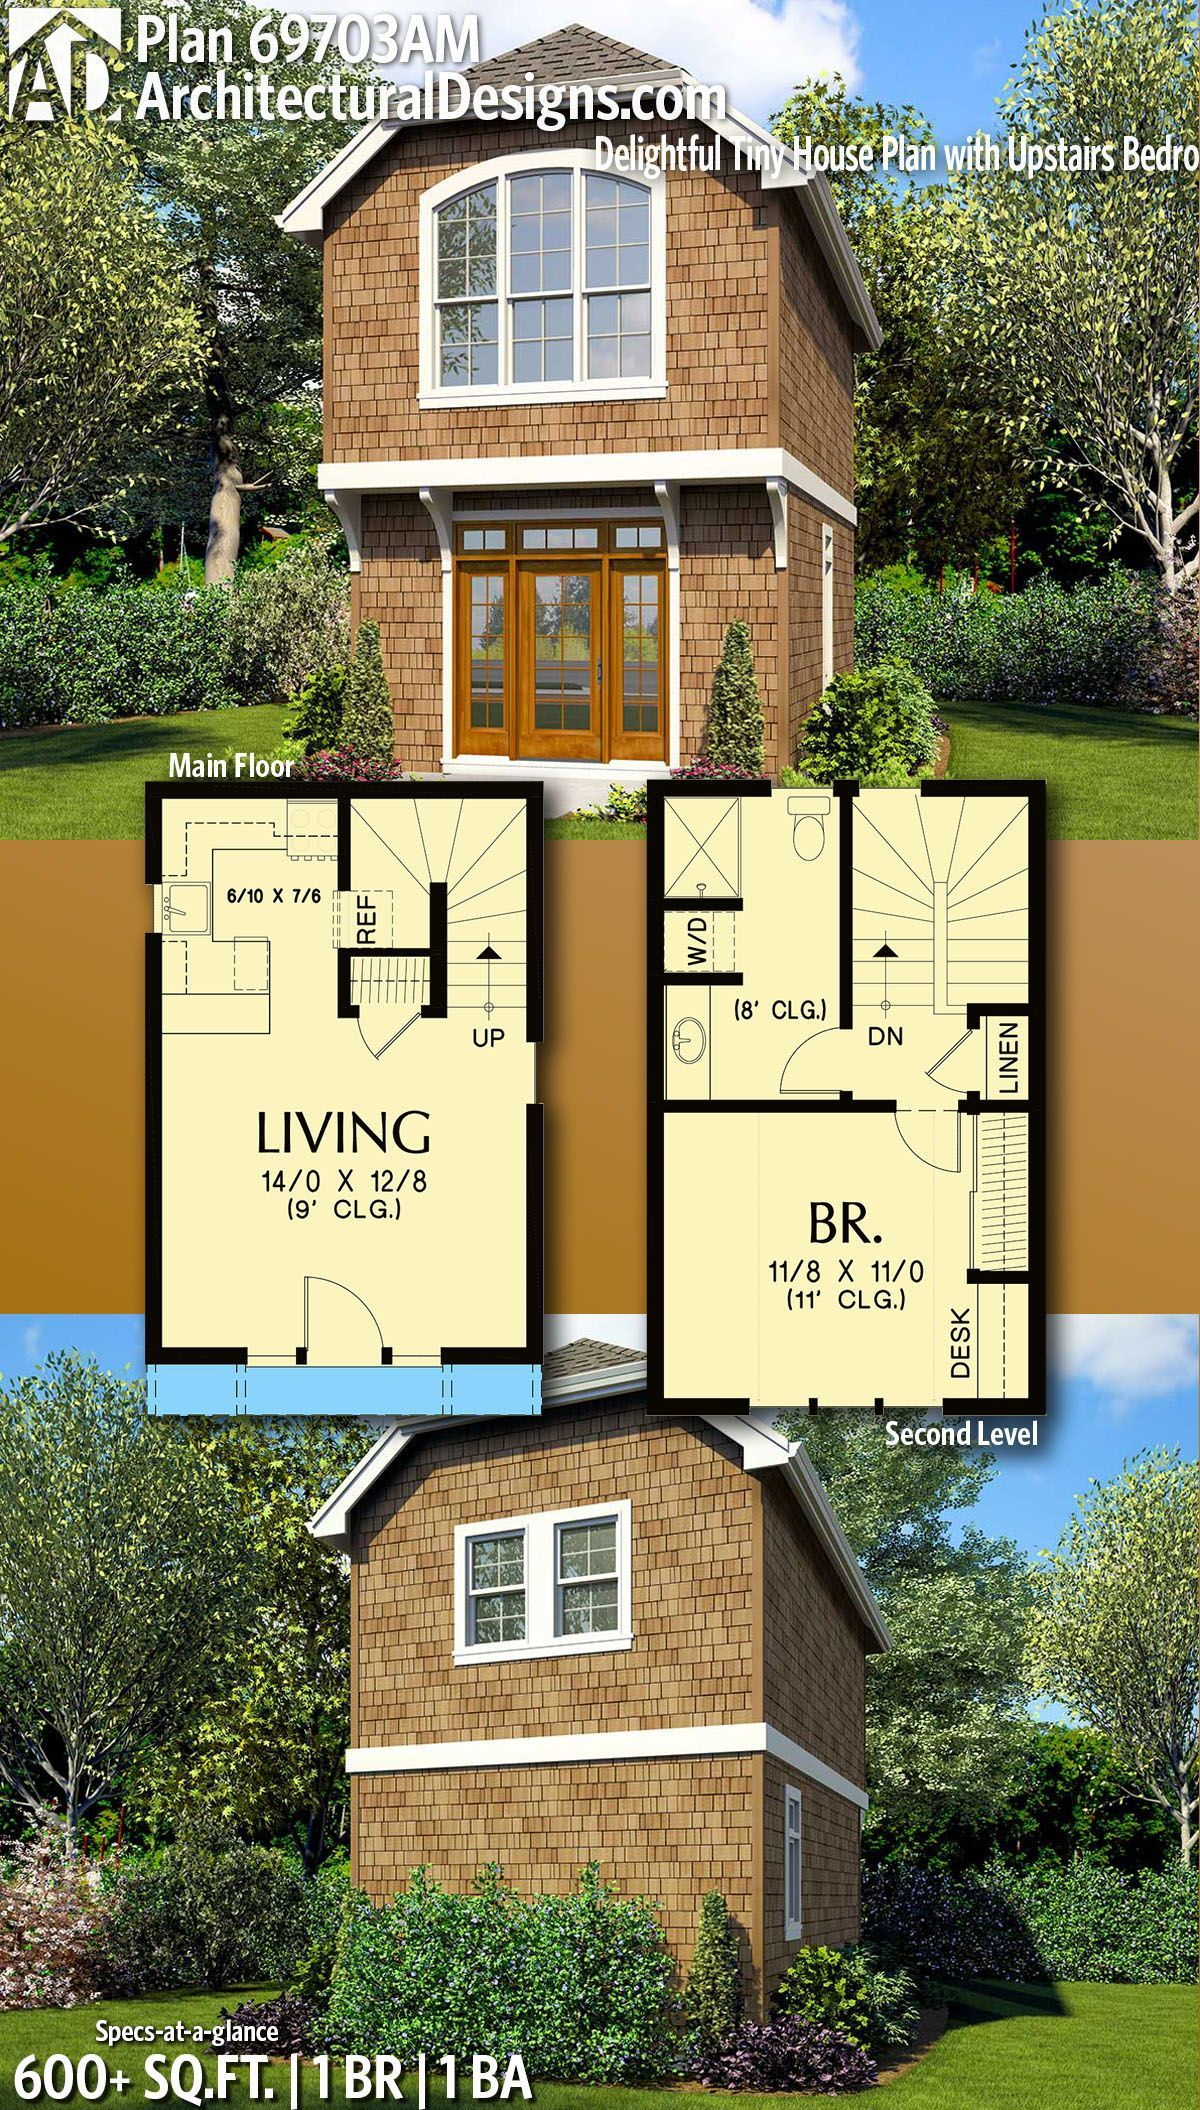 Architectural Designs Tiny House Plan 69703am Gives You 1 Bedrooms 1 Baths And 2 200 Sq Ft Ready Wh Tiny House Floor Plans Tiny House Plan Tiny House Cabin